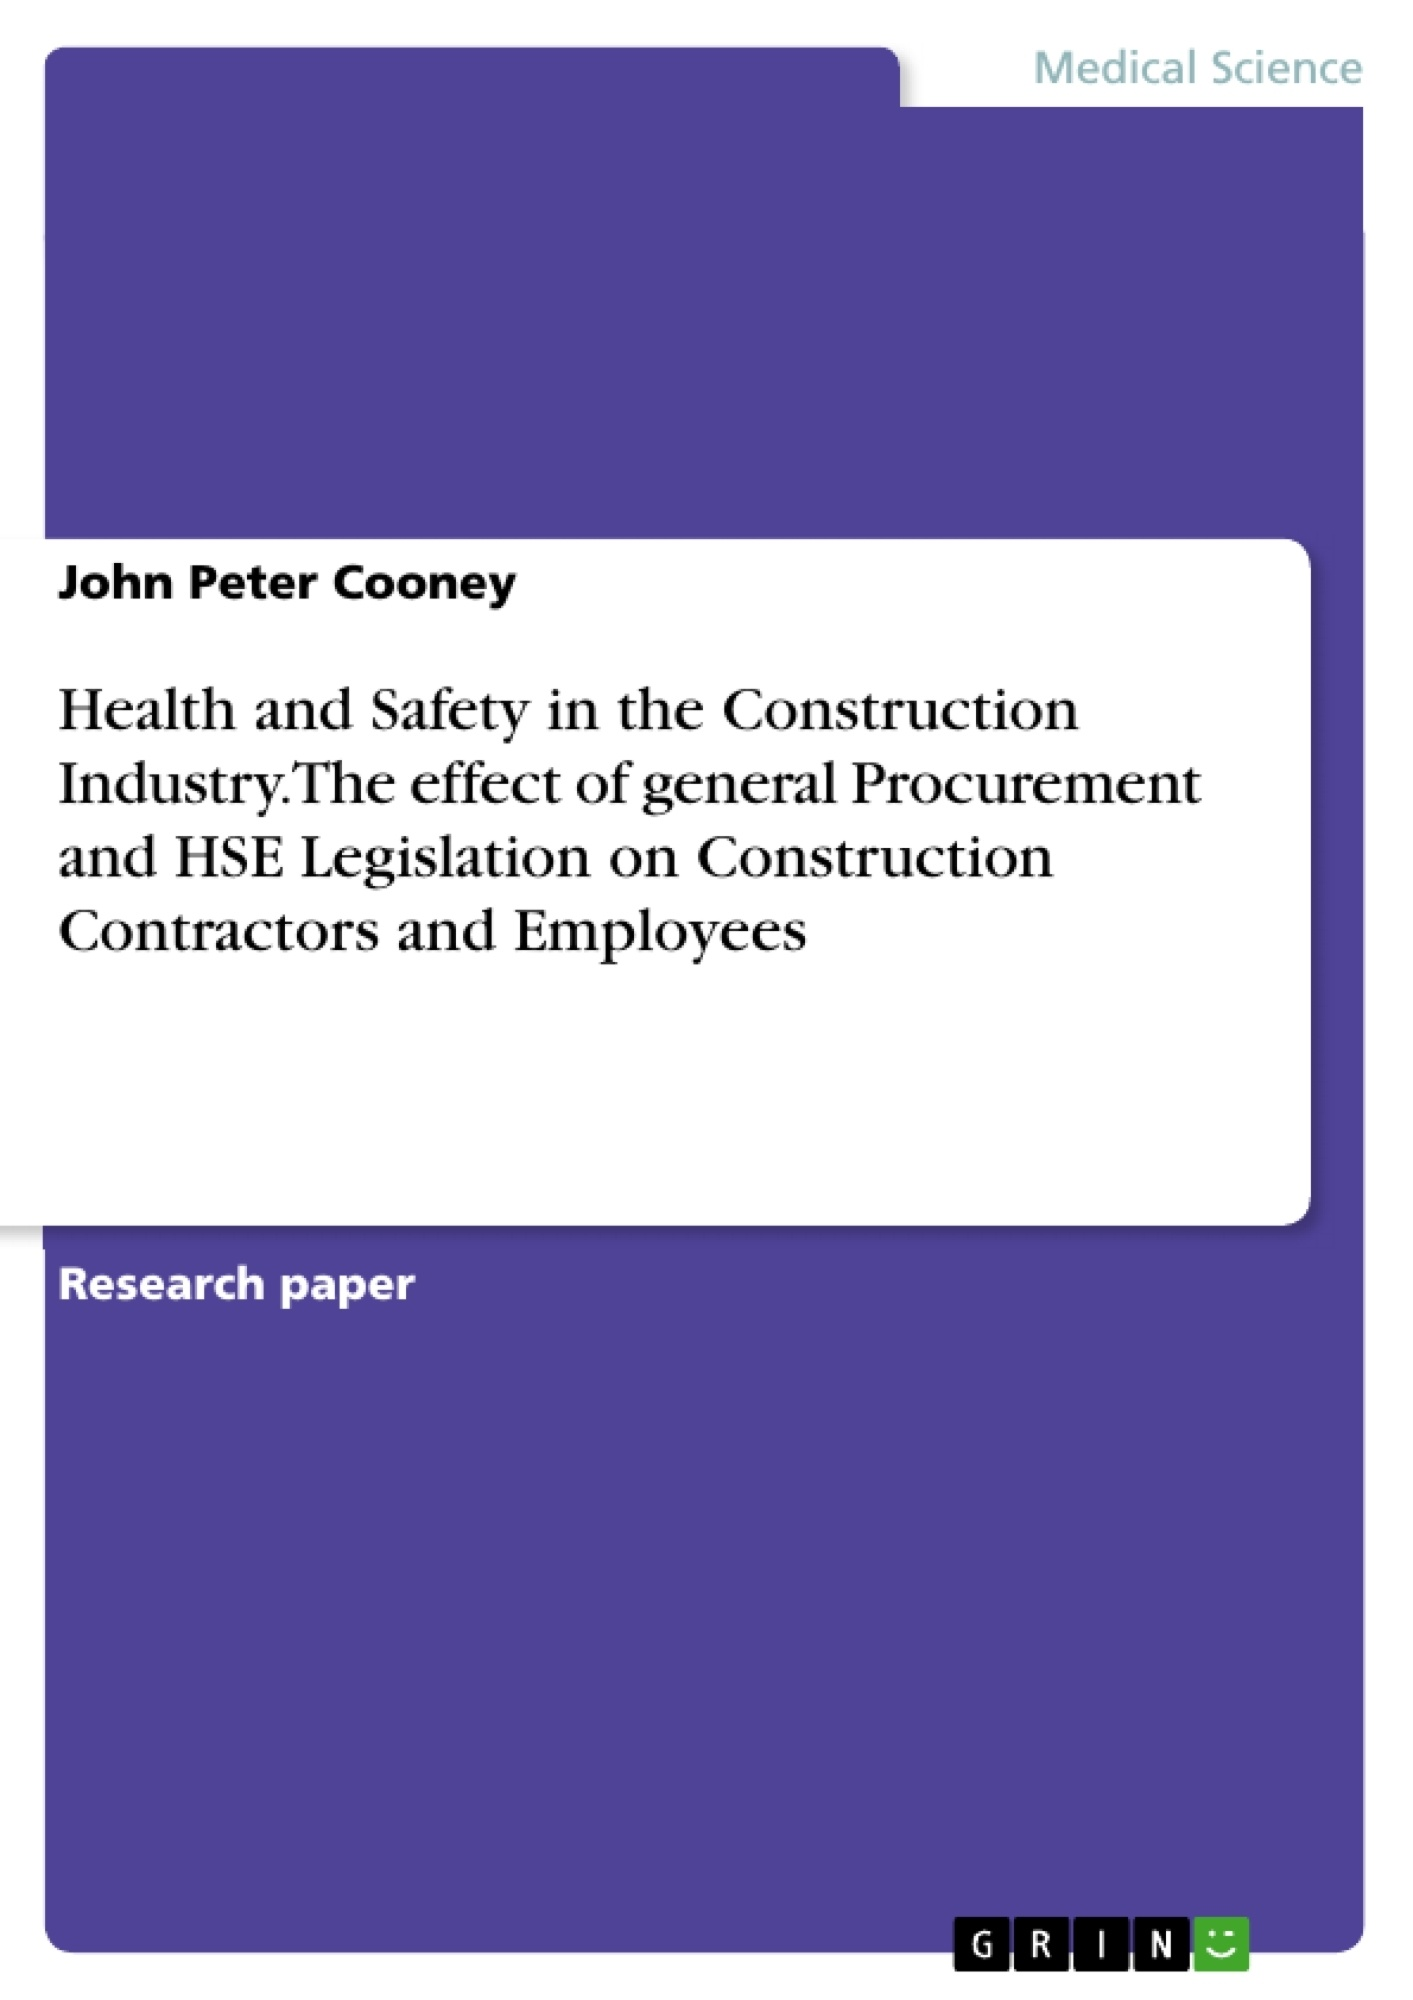 Title: Health and Safety in the Construction Industry. The effect of general Procurement and HSE Legislation on Construction Contractors and Employees